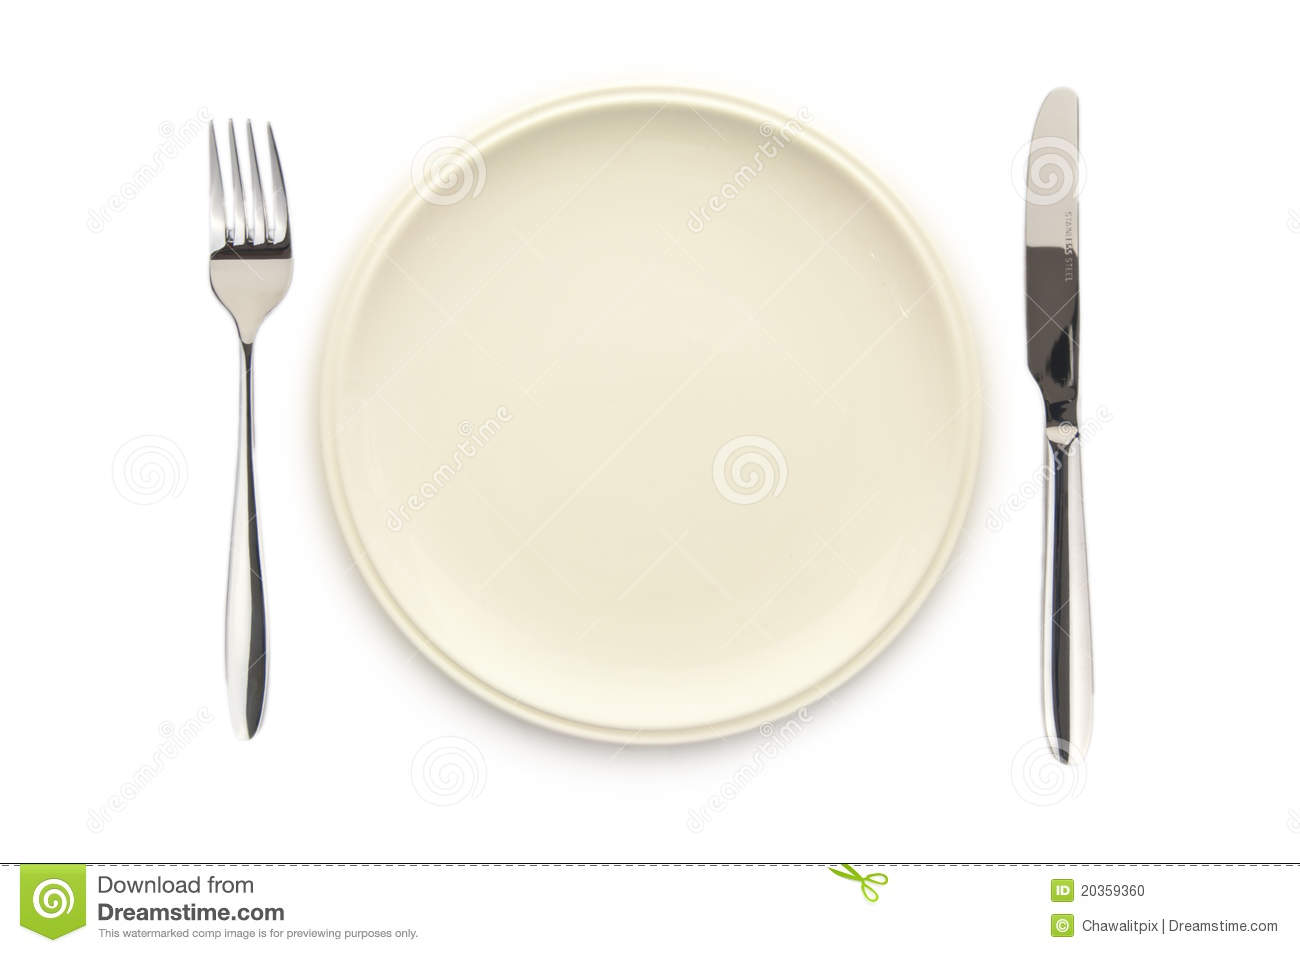 An empty white dish with knife and fork on a table - Empty White Dish Knife And Fork Stock Photo